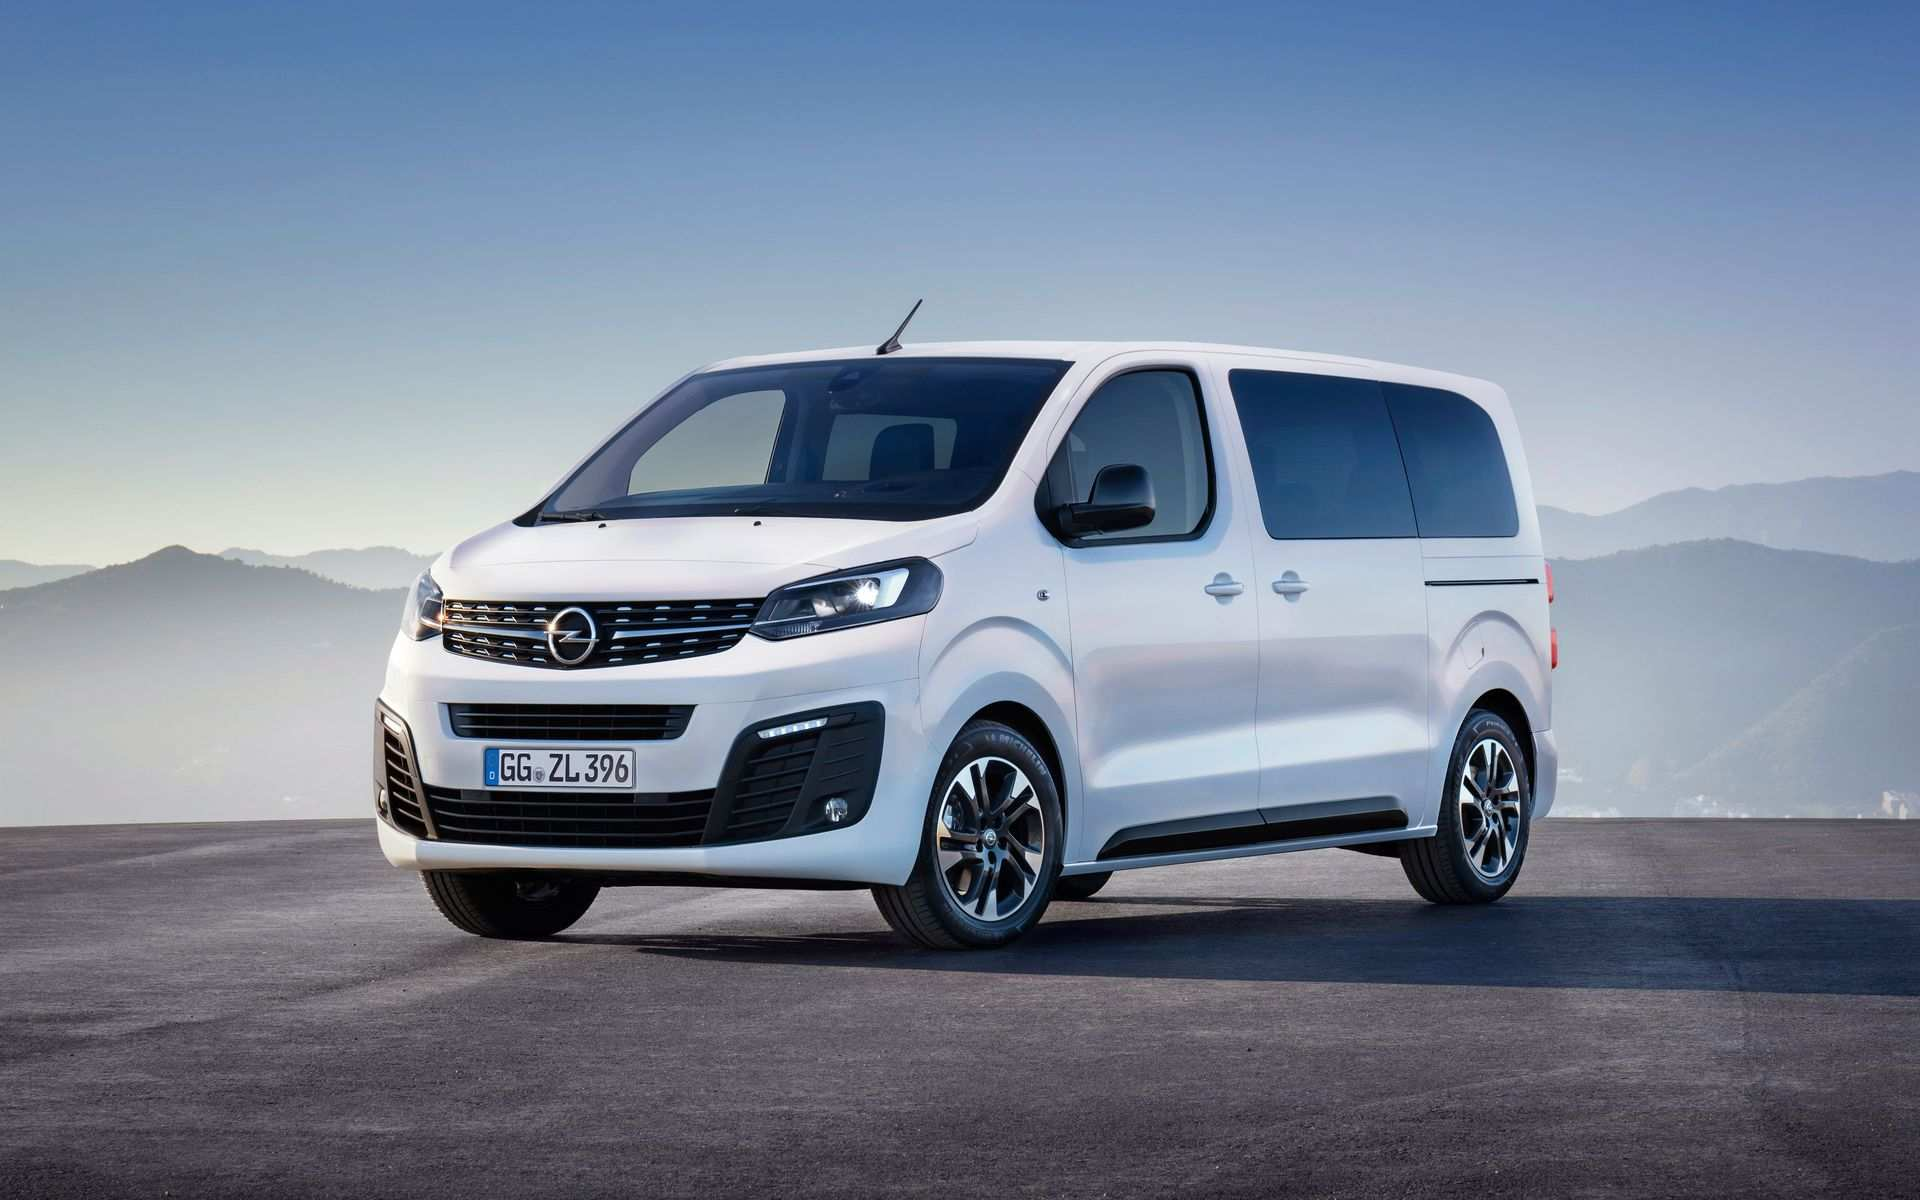 71 Best Review 2019 Opel Vivaro Performance and New Engine by 2019 Opel Vivaro